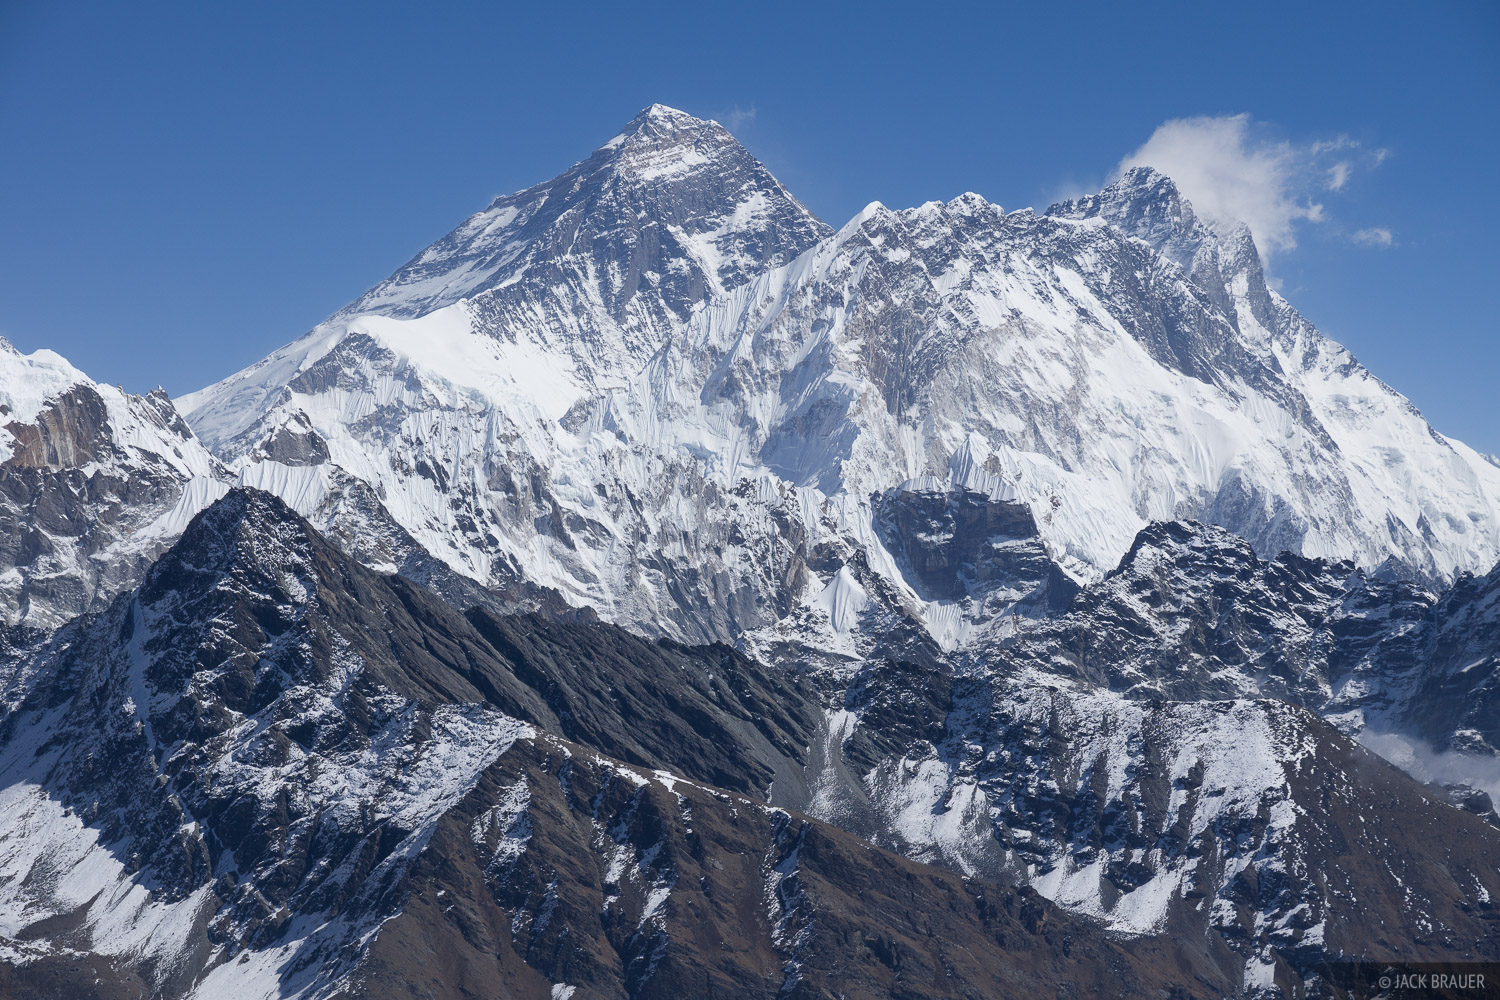 everest essay Everest essay in a well-organized, well thought out essay discuss the following: -describe how setting functions as a character in this film -what drives these people to risk their lives.